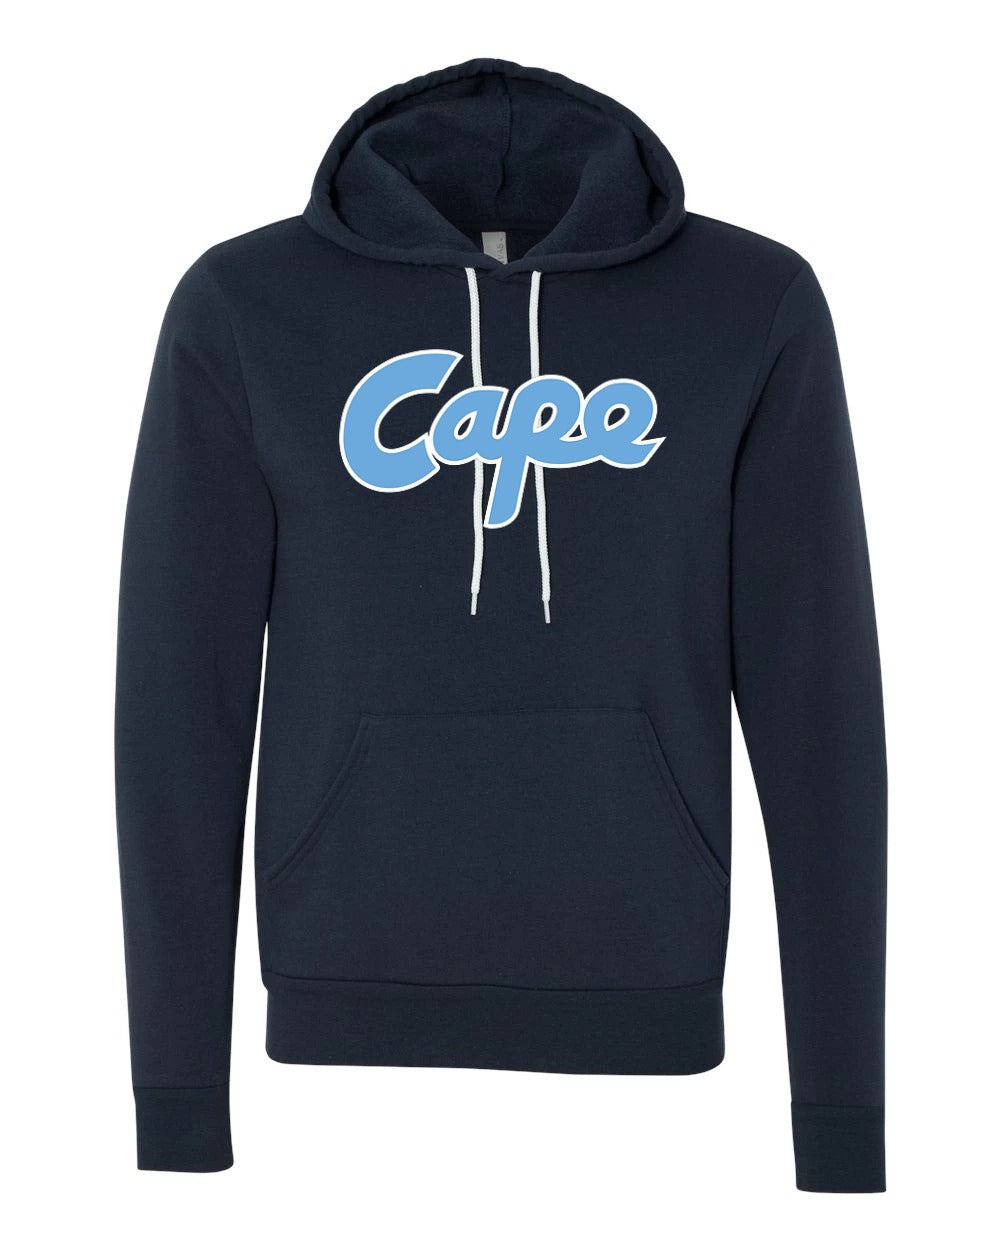 Bella + Canvas - Unisex Hooded Pullover Sweatshirt (ADULT)